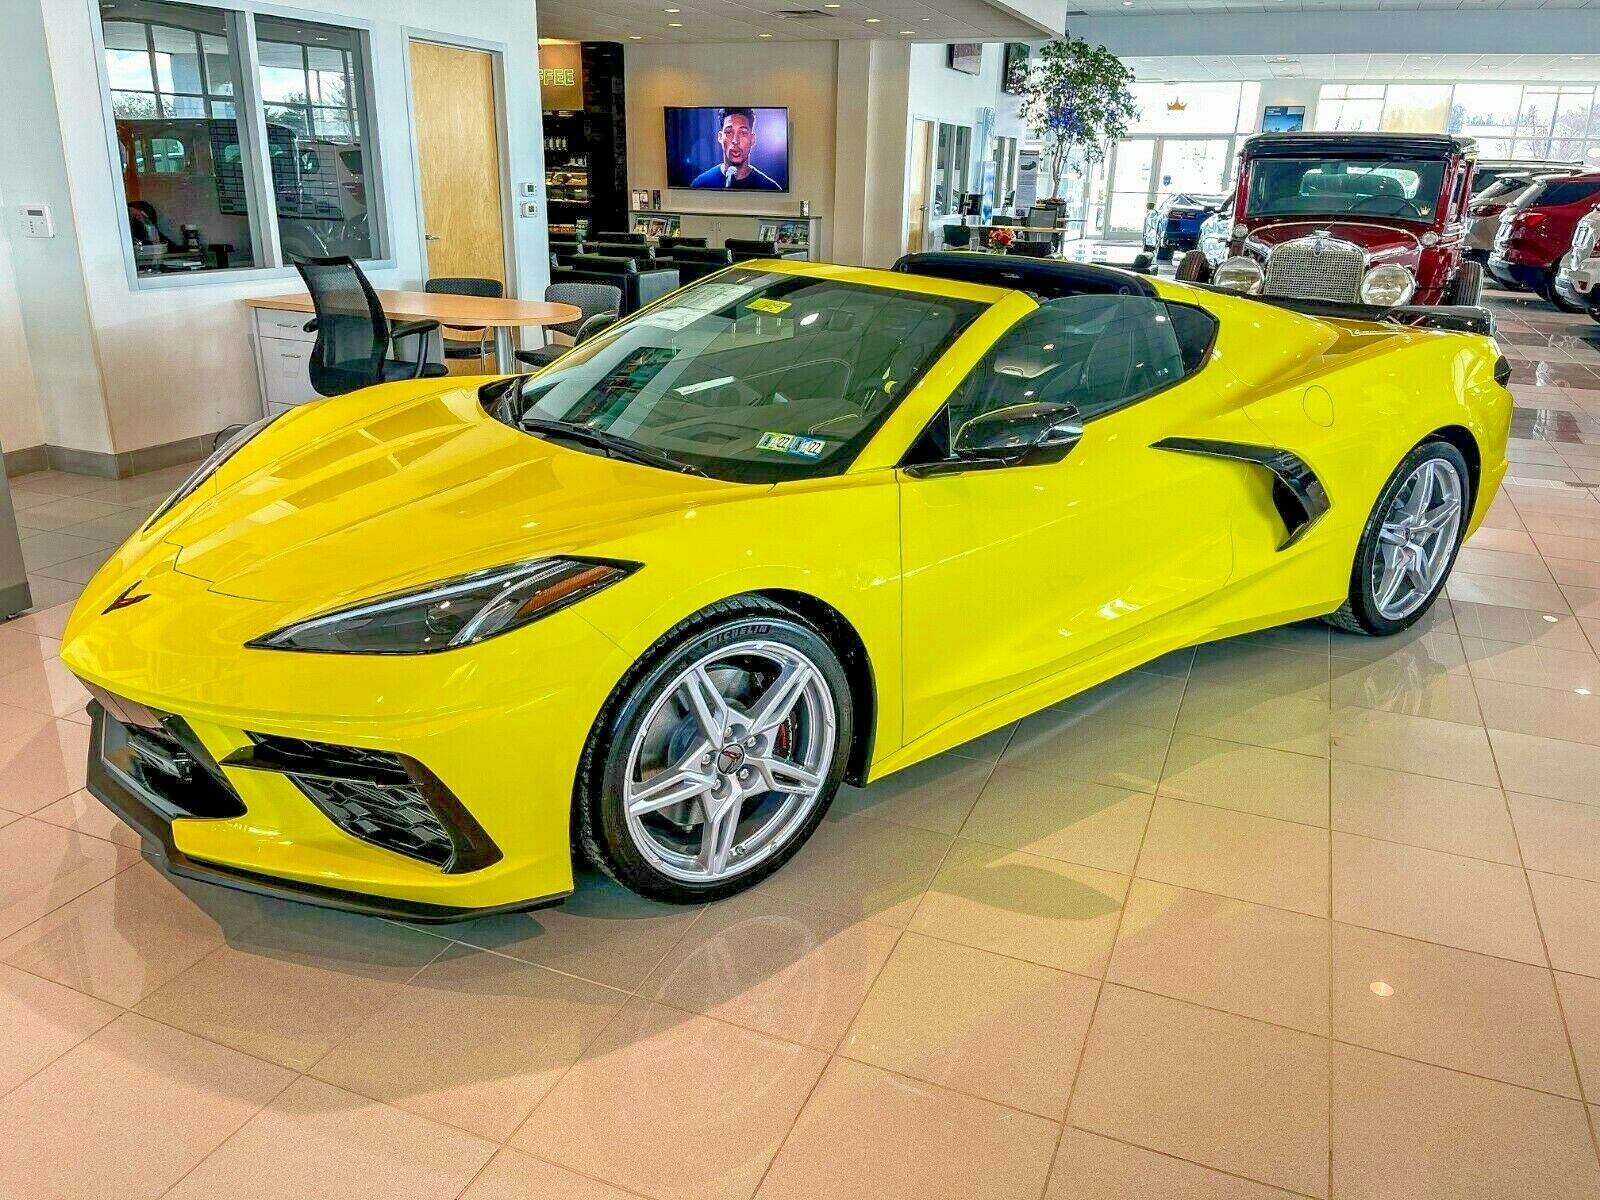 2021 C8 Chevrolet Corvette Stingray Coupe 3LT in Accelerate Yellow